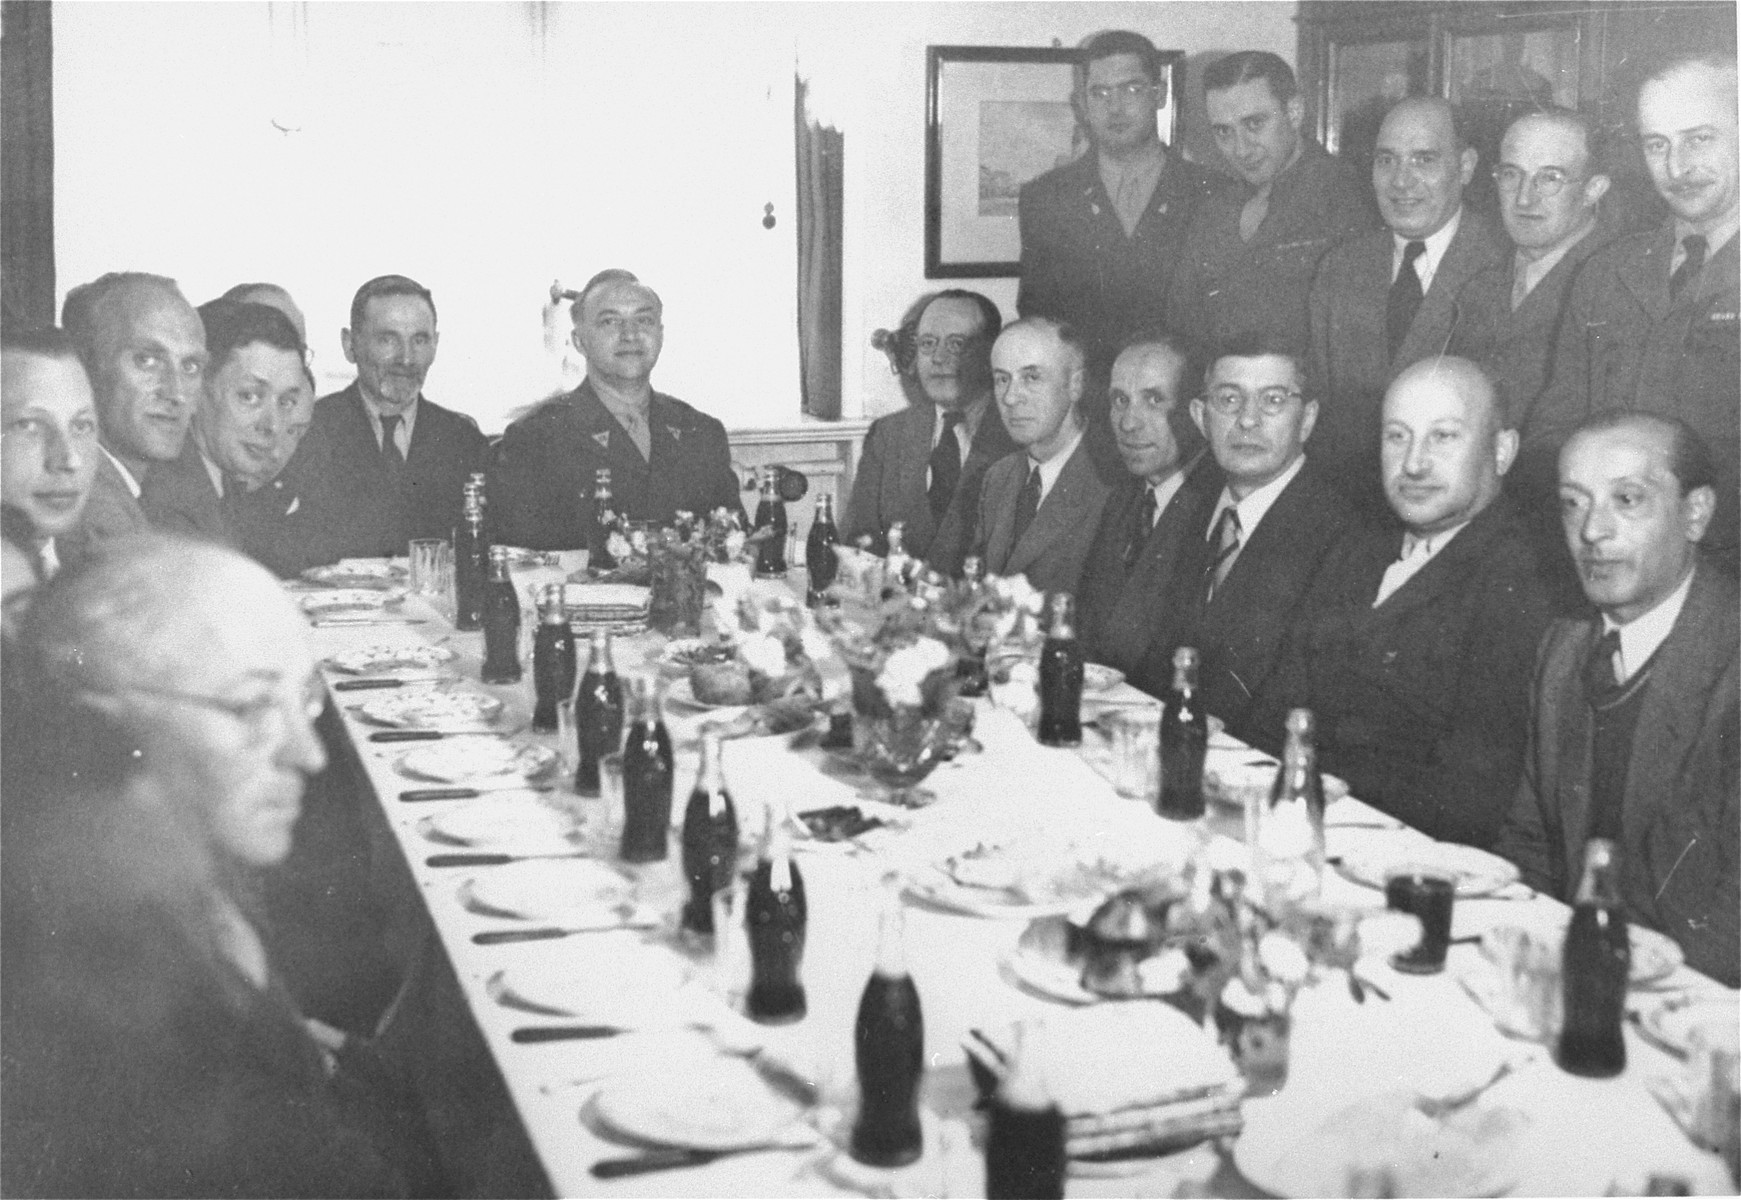 A dinner party in honor of General Joseph McNarney, the newly appointed commander of US forces in occupied Germany, at the Schlachtensee displaced persons camp in Berlin.  Among those pictured are Rabbi Philip Bernstein (at the head of the table in uniform); Chaplain Herbert Friedman (back row, first from the left); Eli Rock, JDC director for Berlin (next to Friedman); and Hans Erich Fabian (left side, leaning forward, near the head of the table).